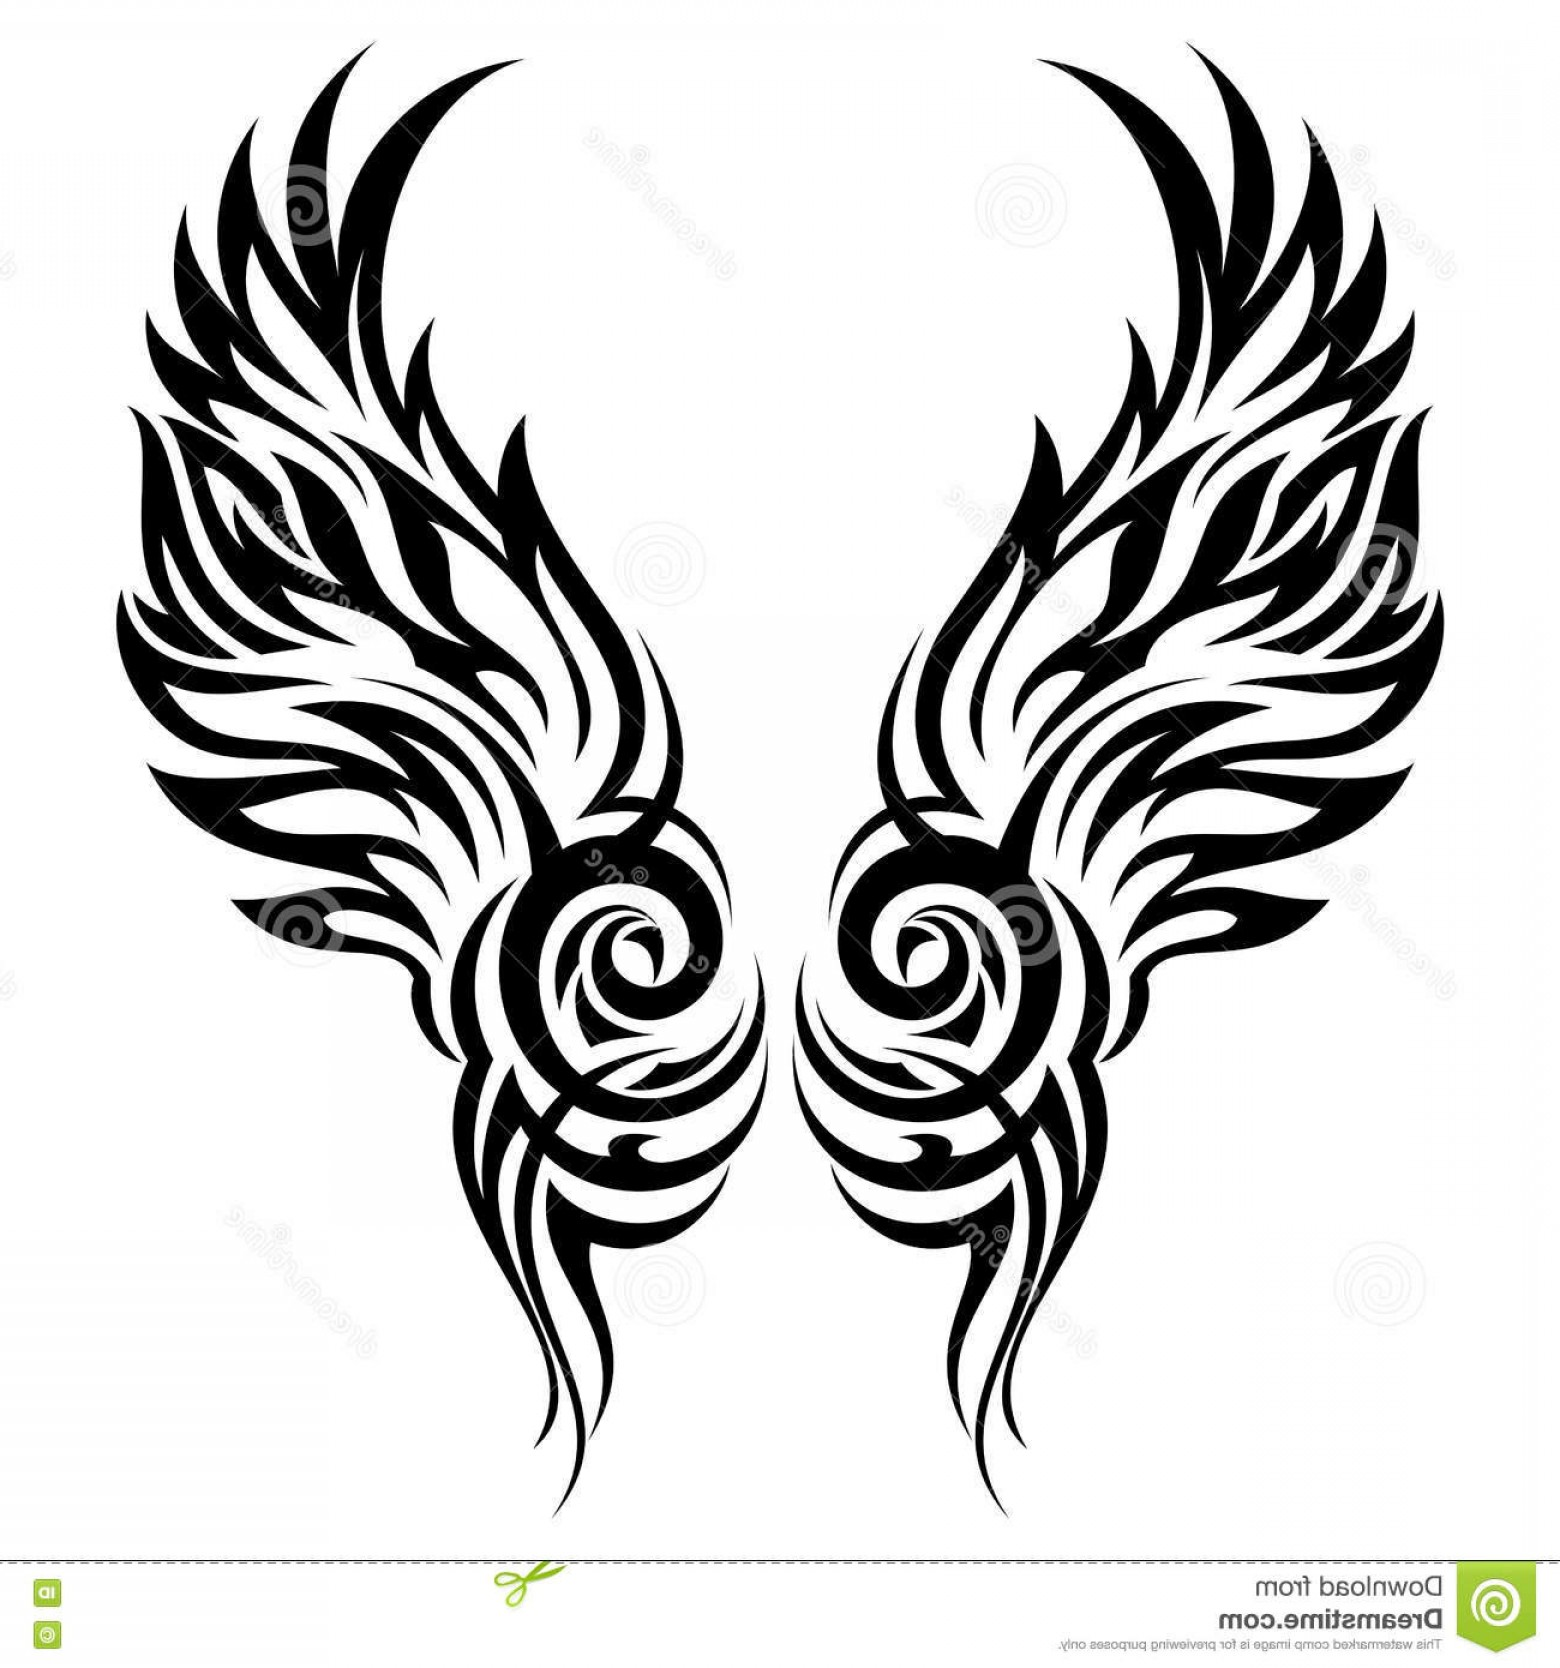 Angel Wings Tattoo Tribal Vector: Stock Illustration Flaming Wings Tribal Tattoo Vector Ornament Image